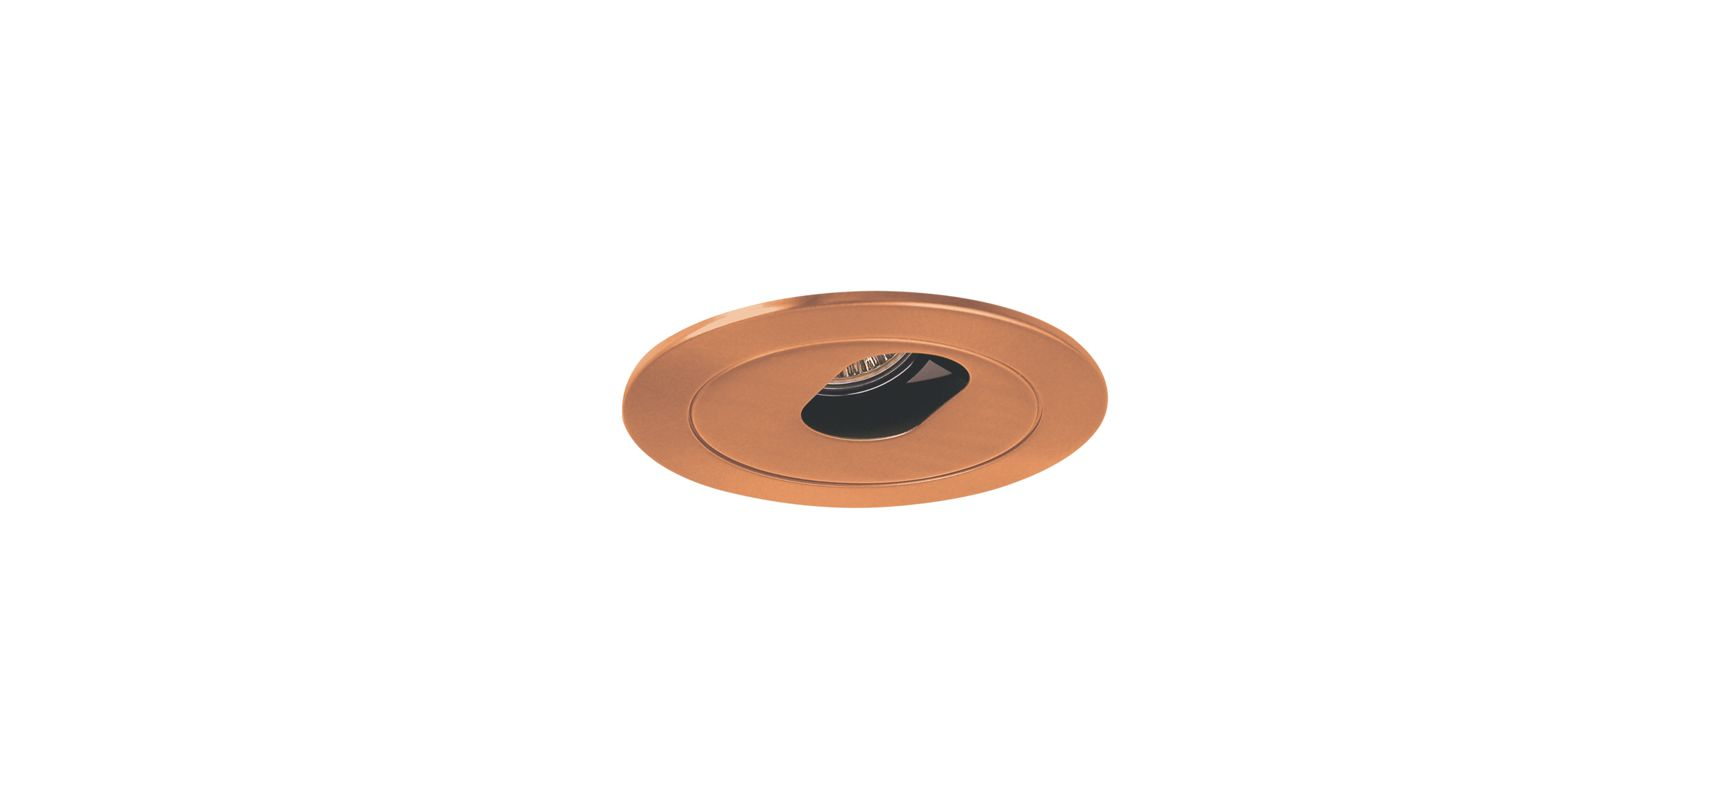 "Elco EL1420 4"" Low Voltage Adjustable Slot Aperture Copper Recessed"